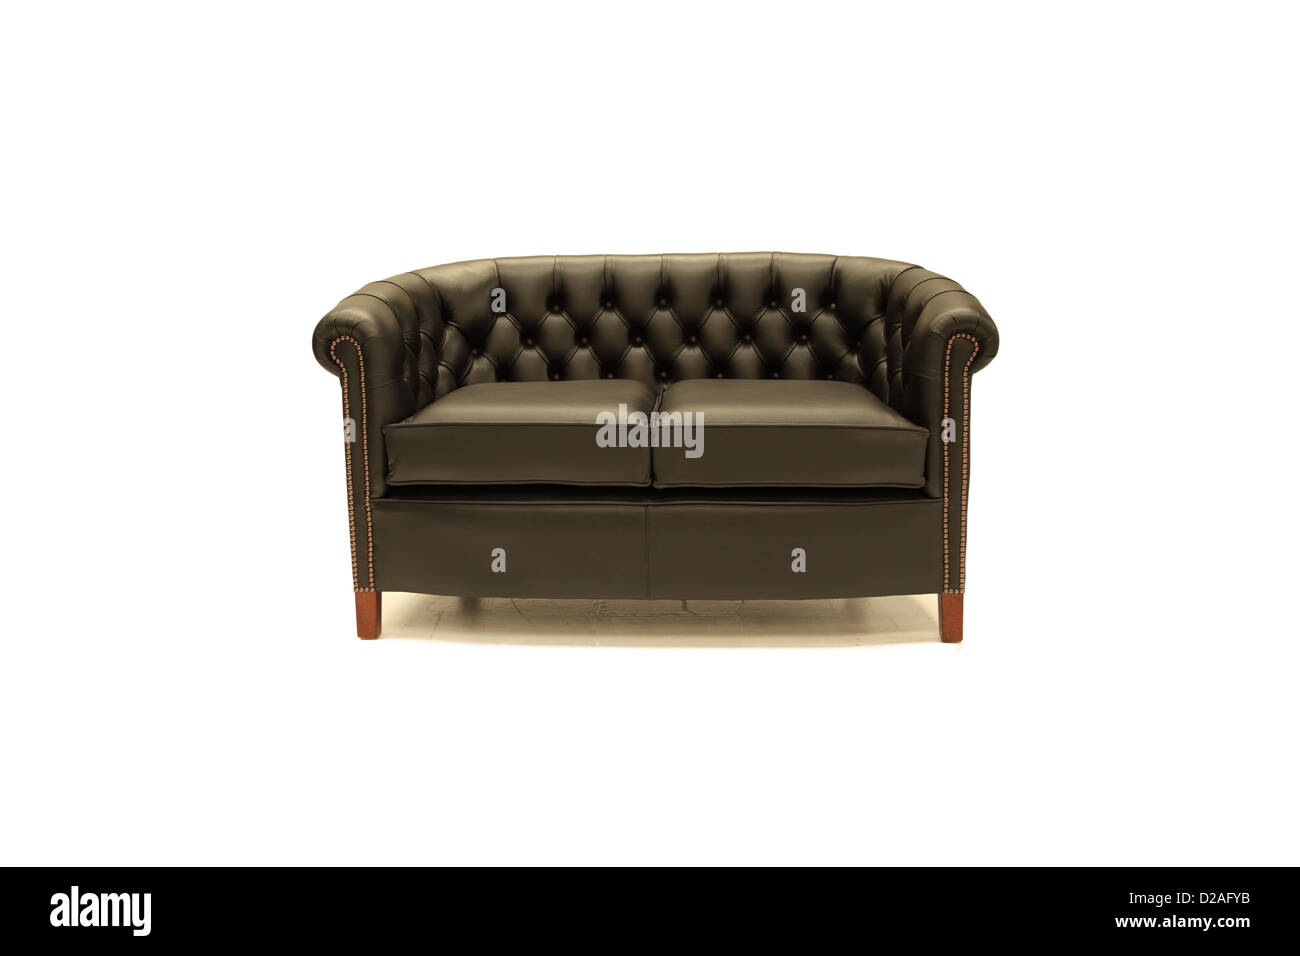 Leather chesterfield sofa - Stock Image